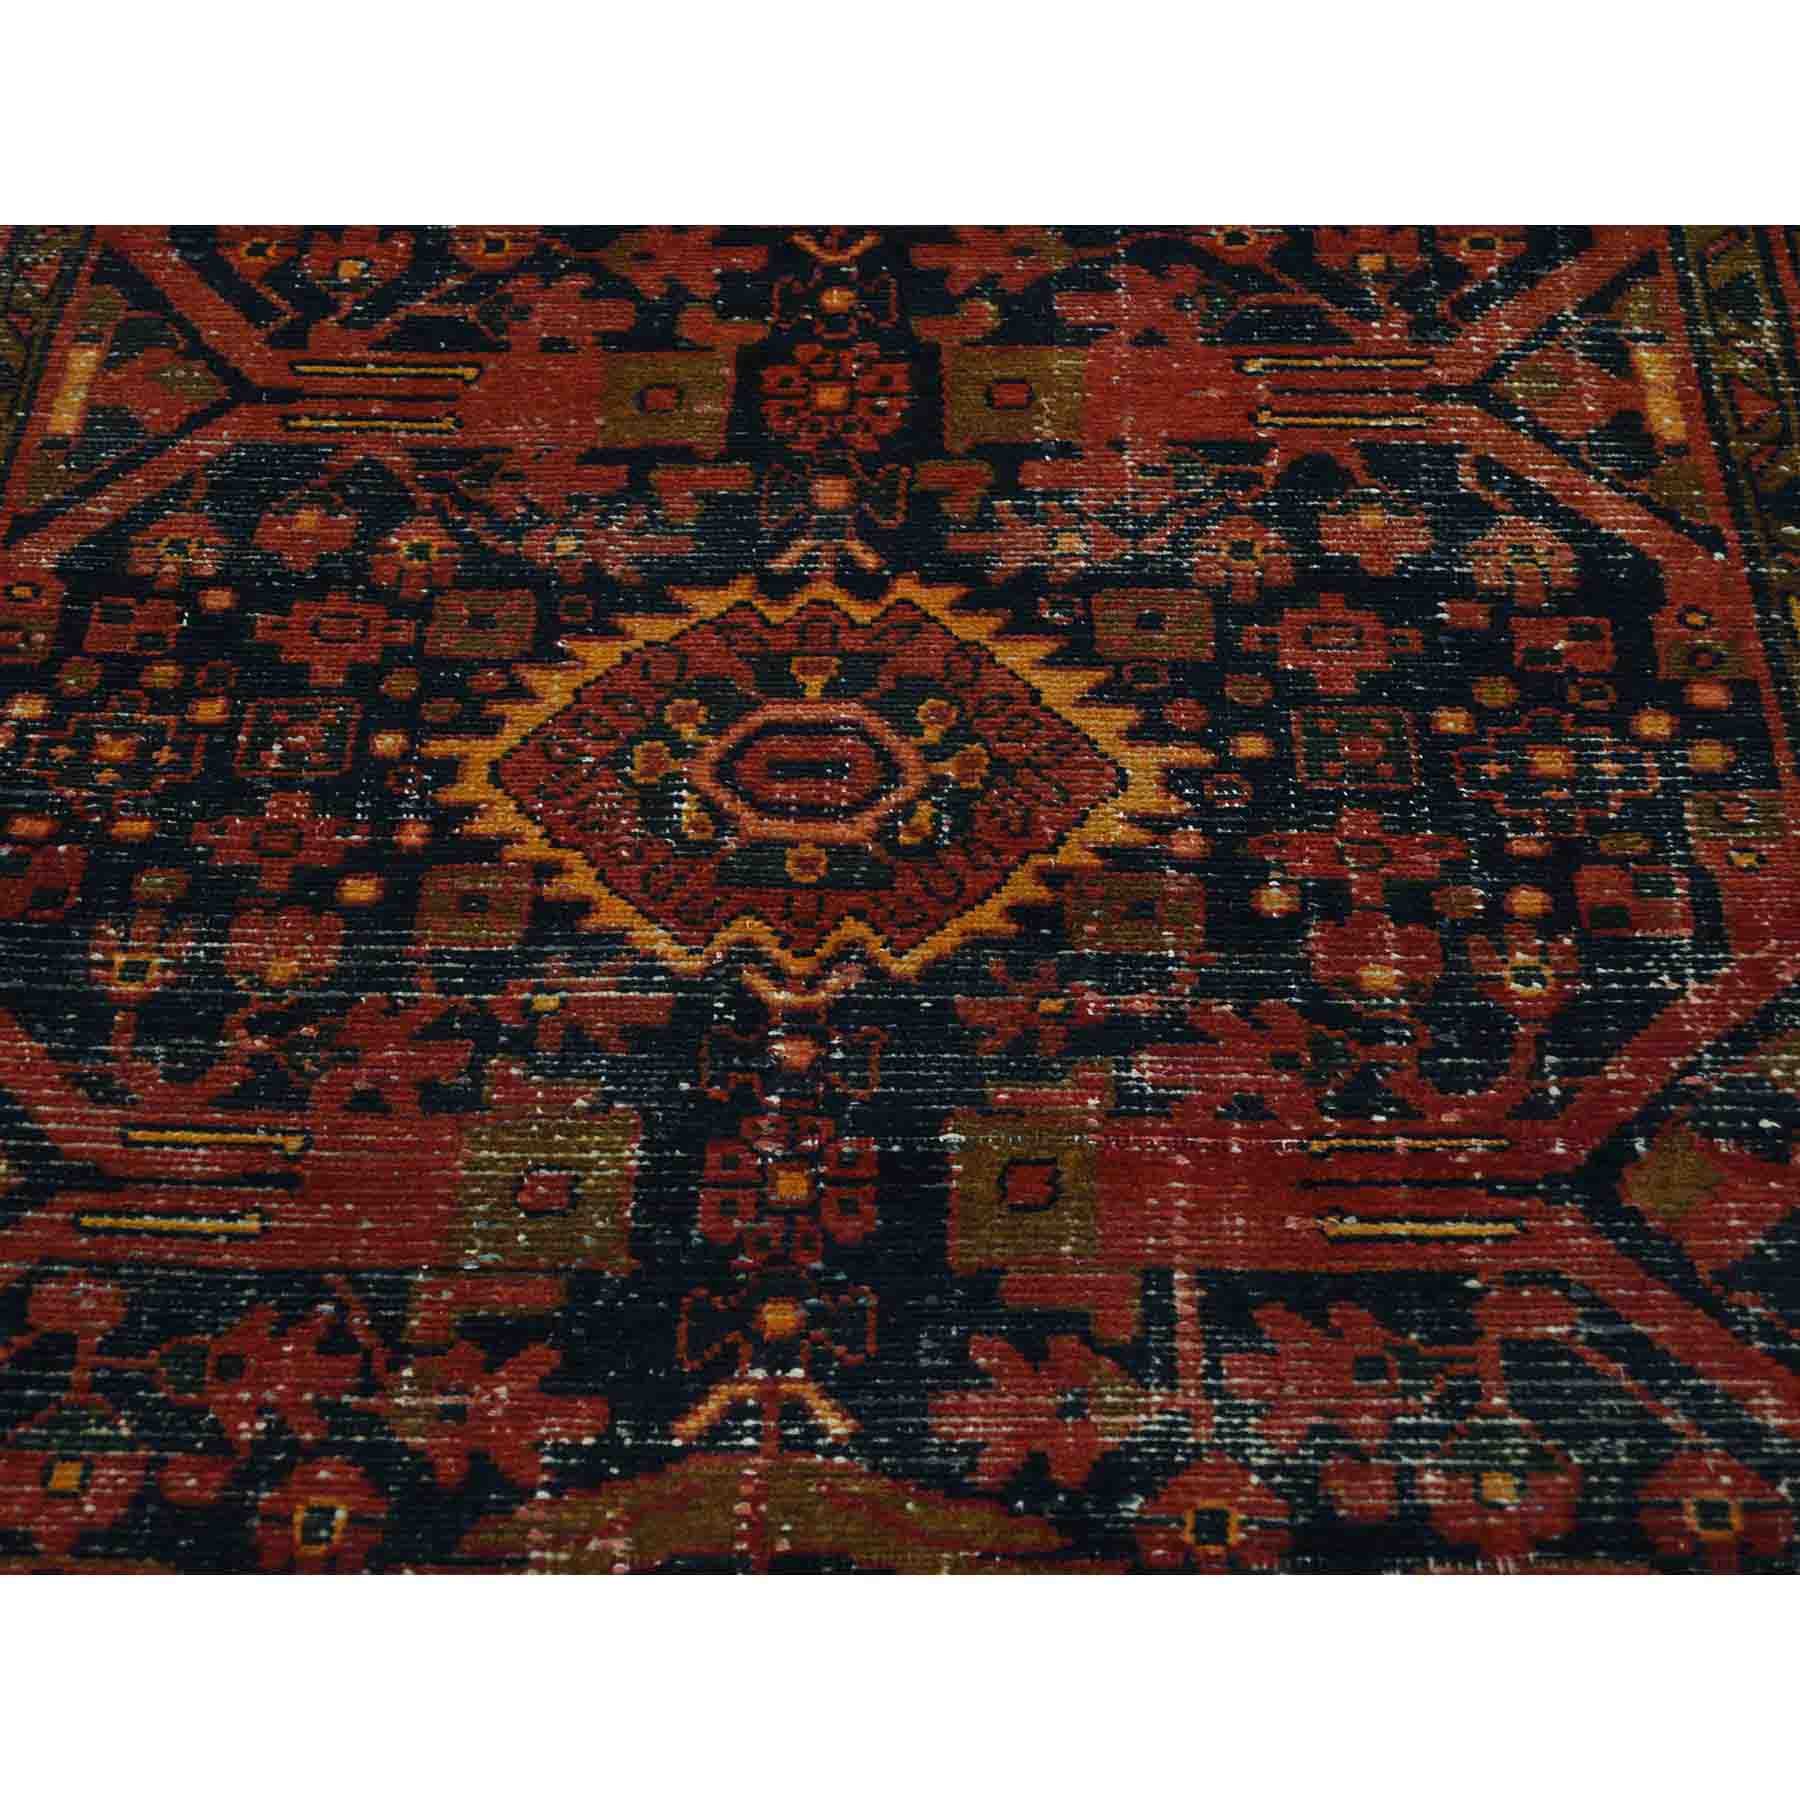 Overdyed-Vintage-Hand-Knotted-Rug-191415